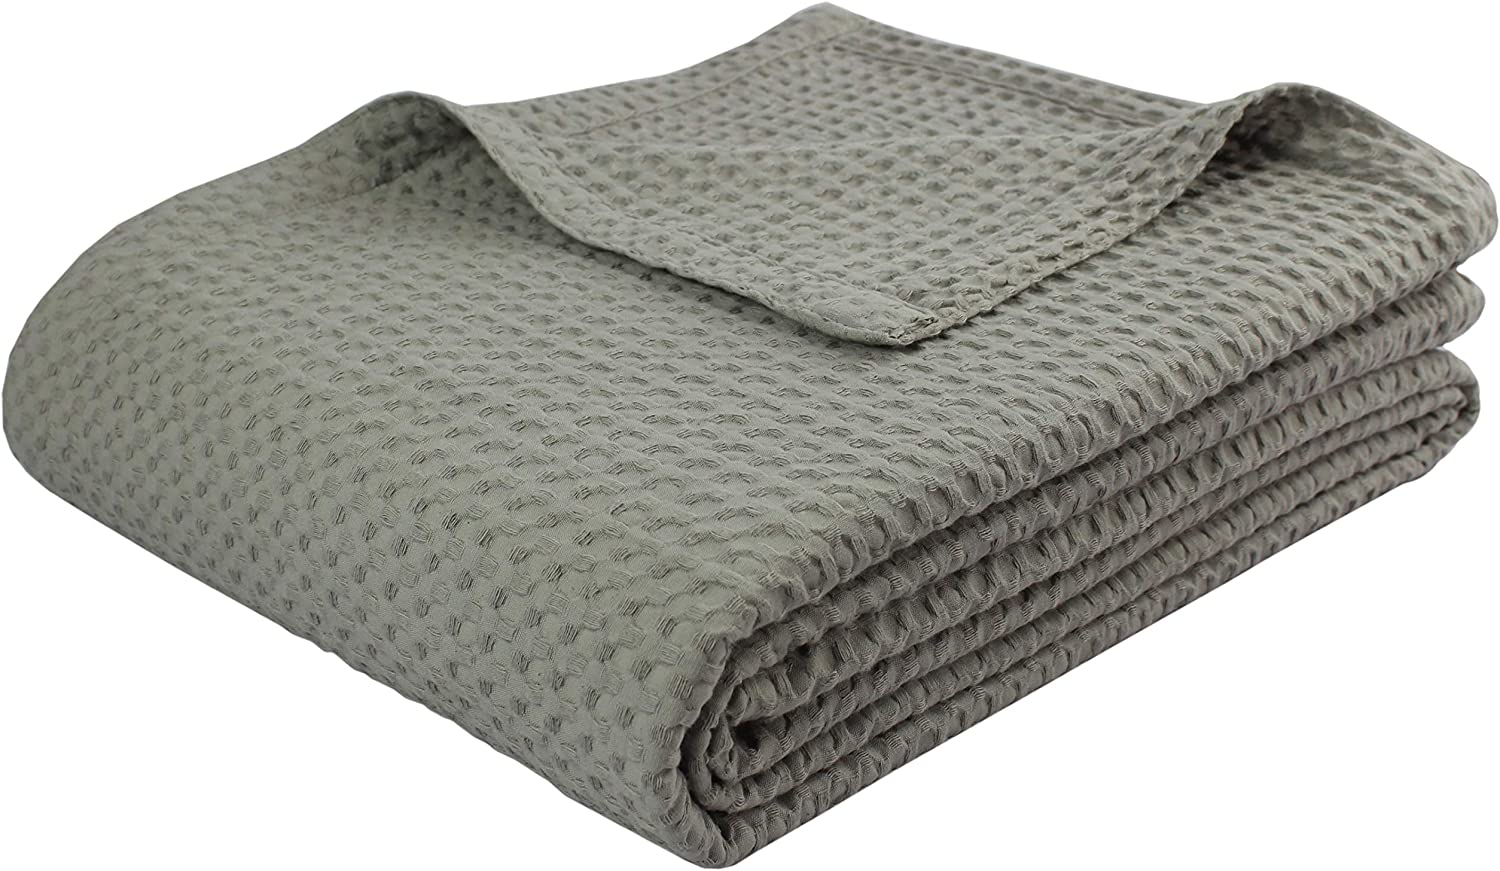 COTTON CRAFT - 100% Super Soft Premium Cotton Waffle Weave Thermal Blanket - Full/Queen Grey